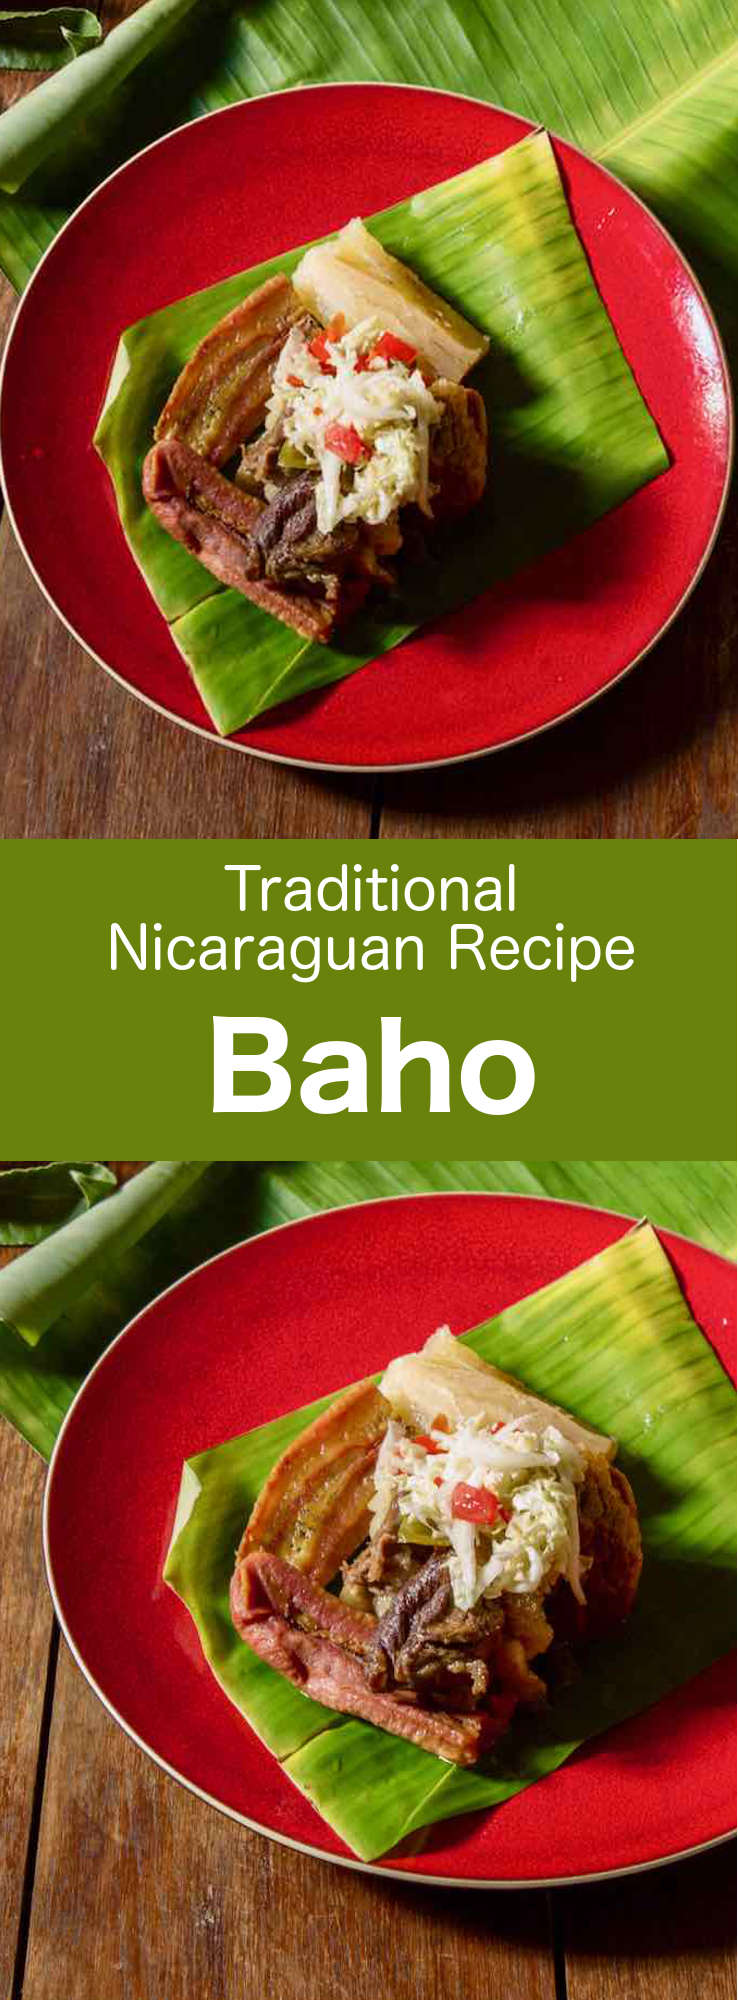 Baho (or vaho) is a traditional Nicaraguan recipe that is prepared with beef, plantains and cassava, and that is cooked in banana leaves. #Nicaragua #NicaraguaFood #NicaraguaRecipe #NicaraguaCuisine #WorldCuisine #196flavors